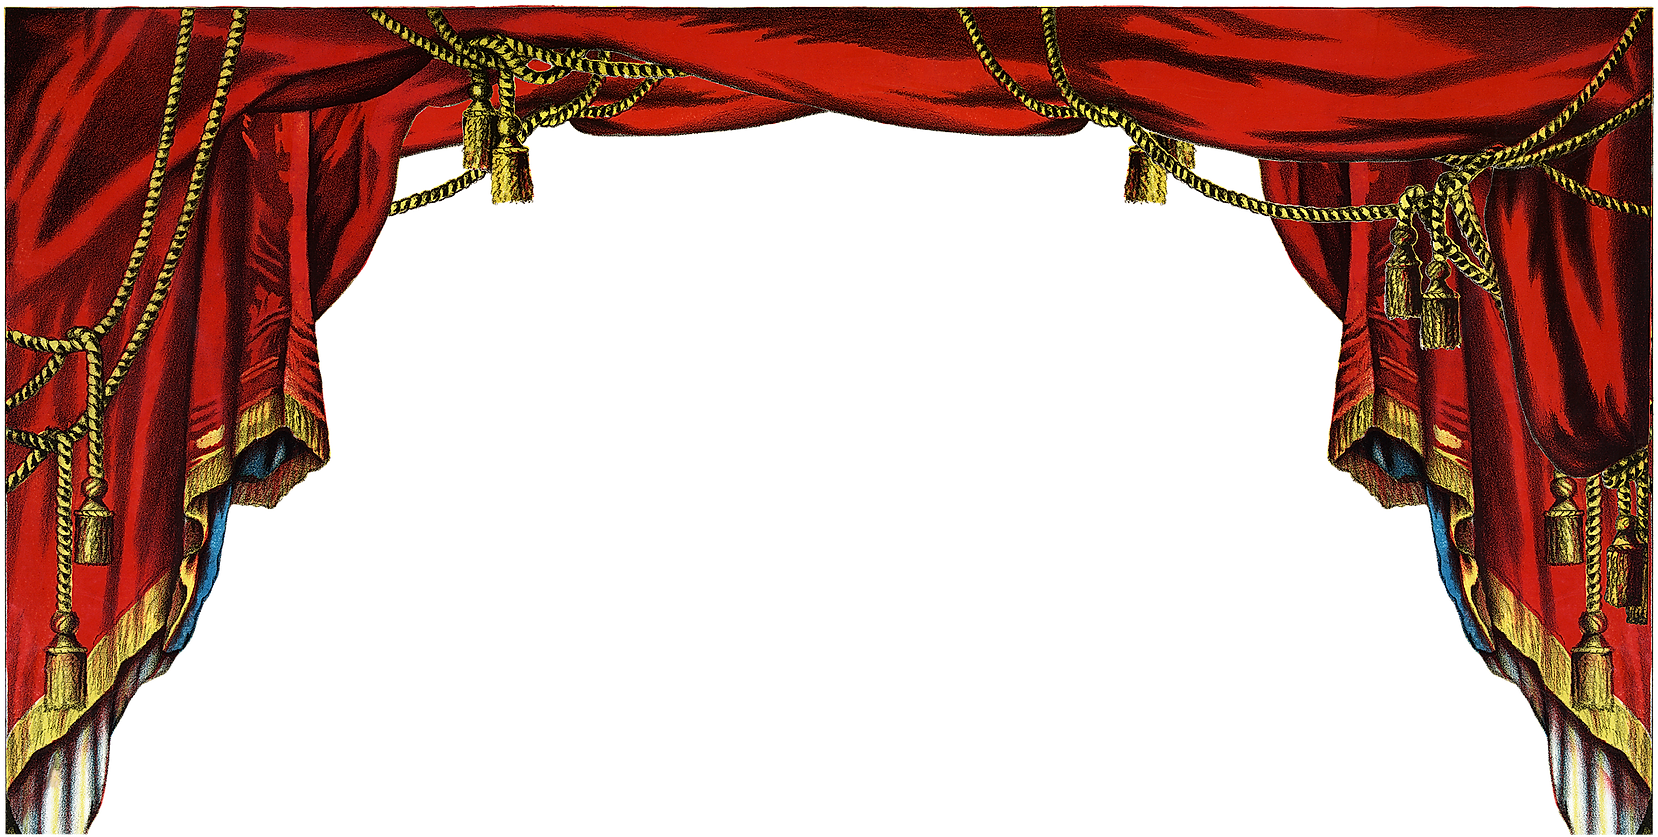 19_red_rope_curtain_graphicsfairy.png